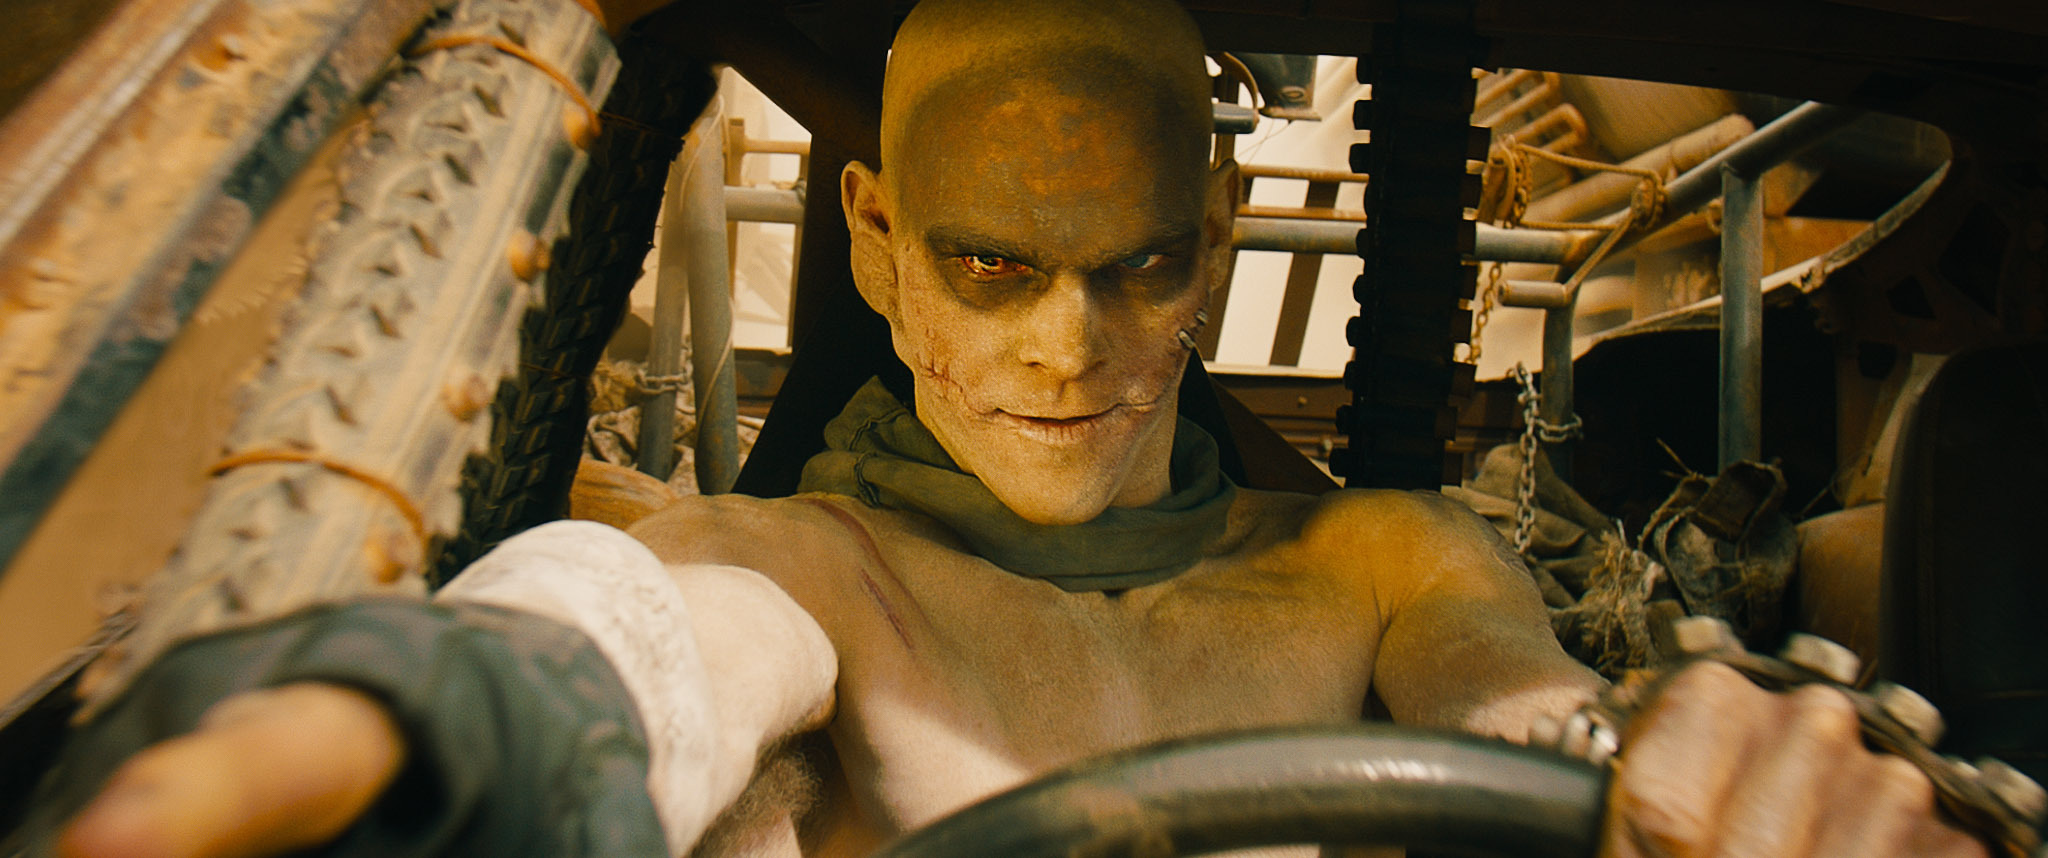 Josh Helman in Mad Max: Fury Road (2015)